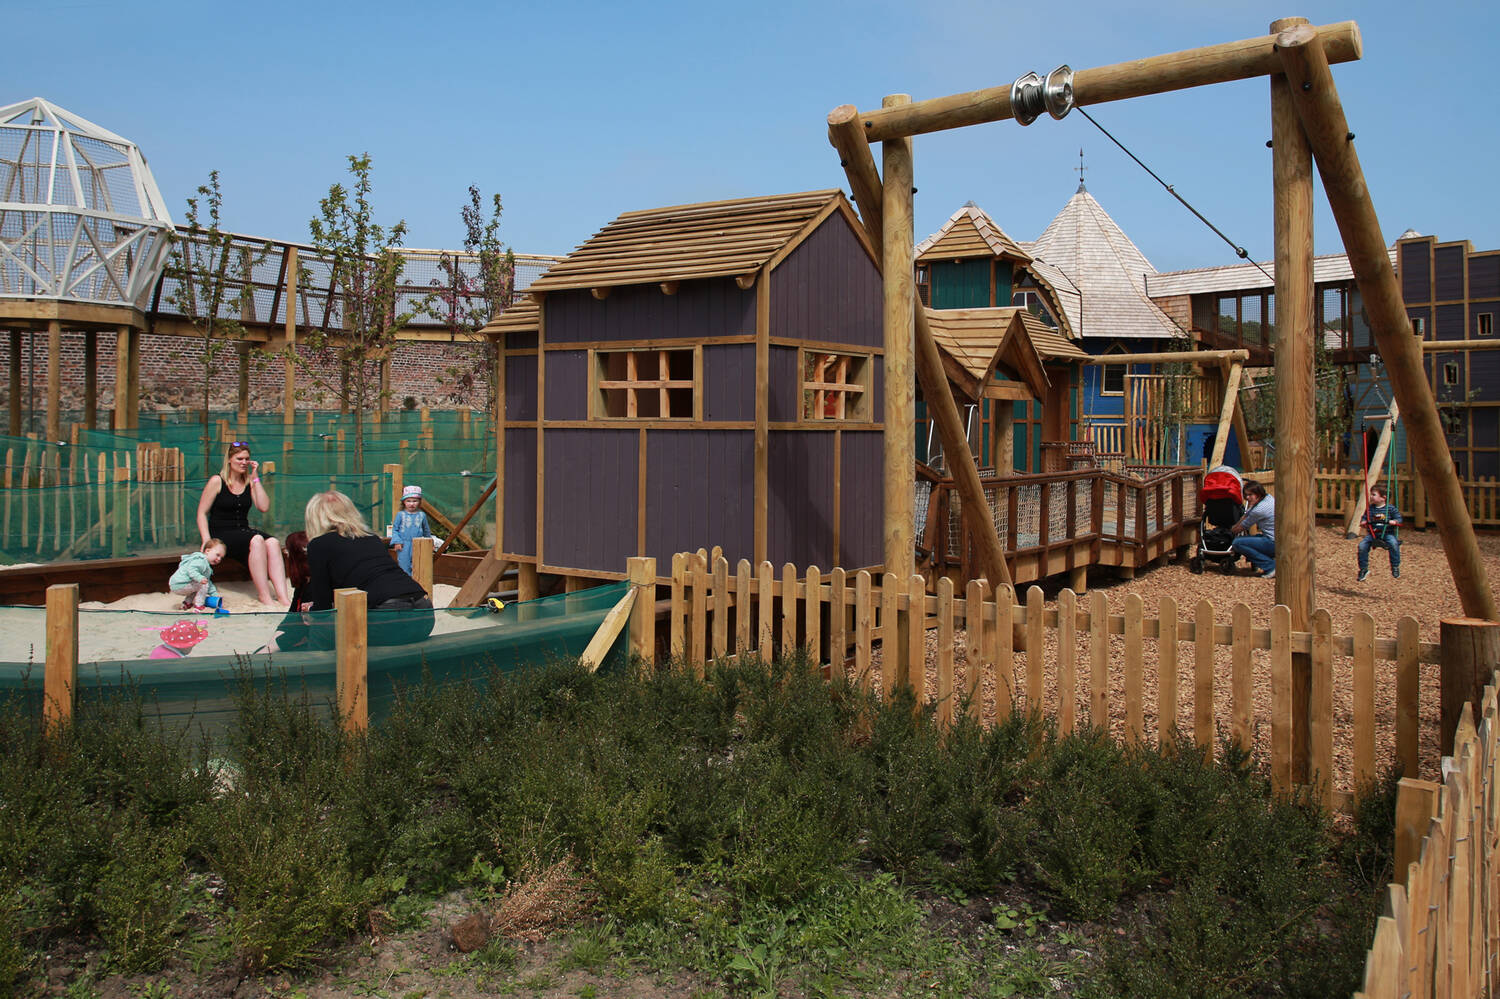 Weehailes Playpark is proving to be a big hit with families